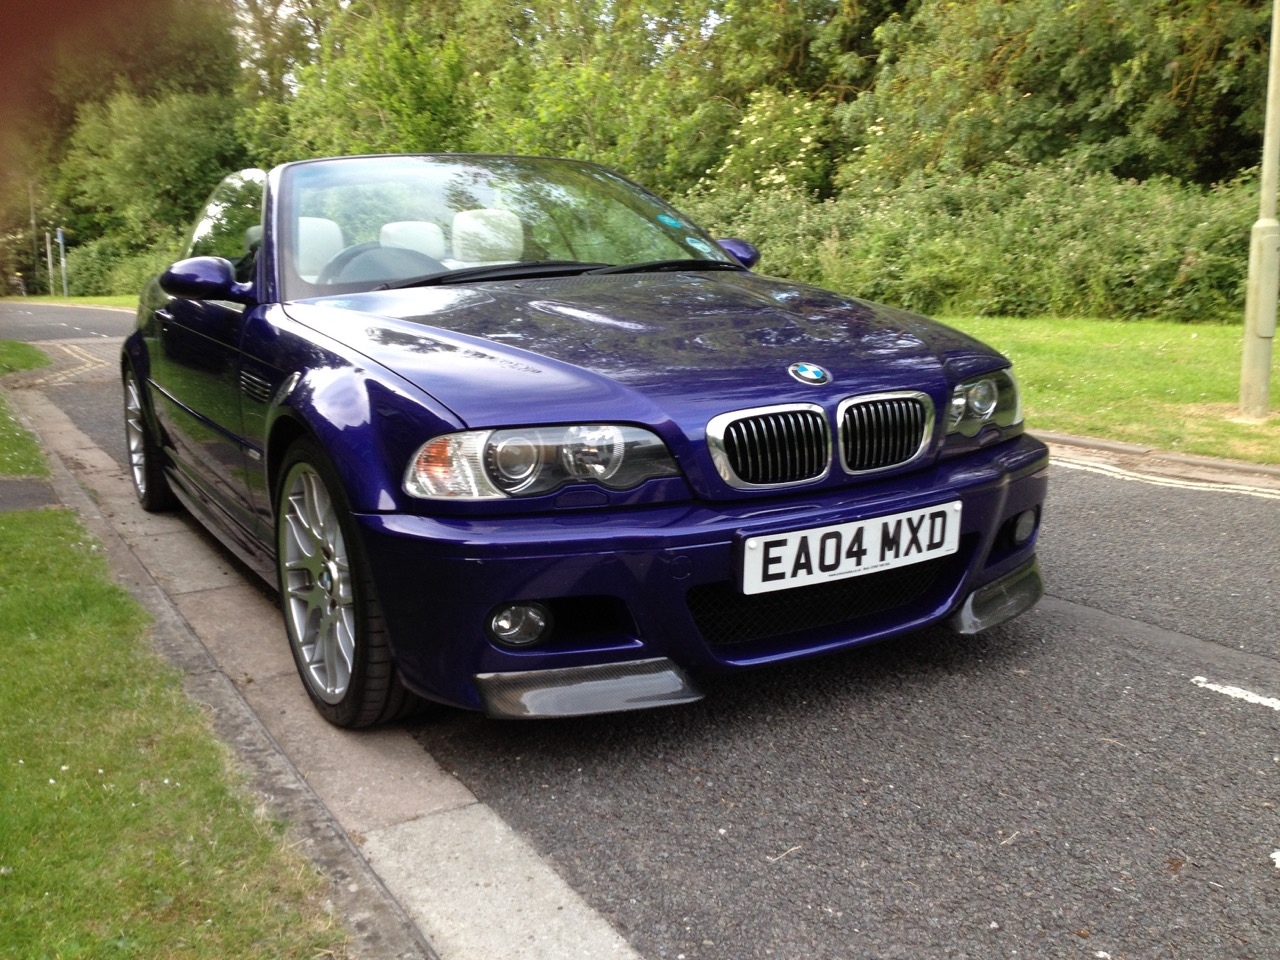 2004 BMW E46 M3 Individual Convertible with factory fitted CSL